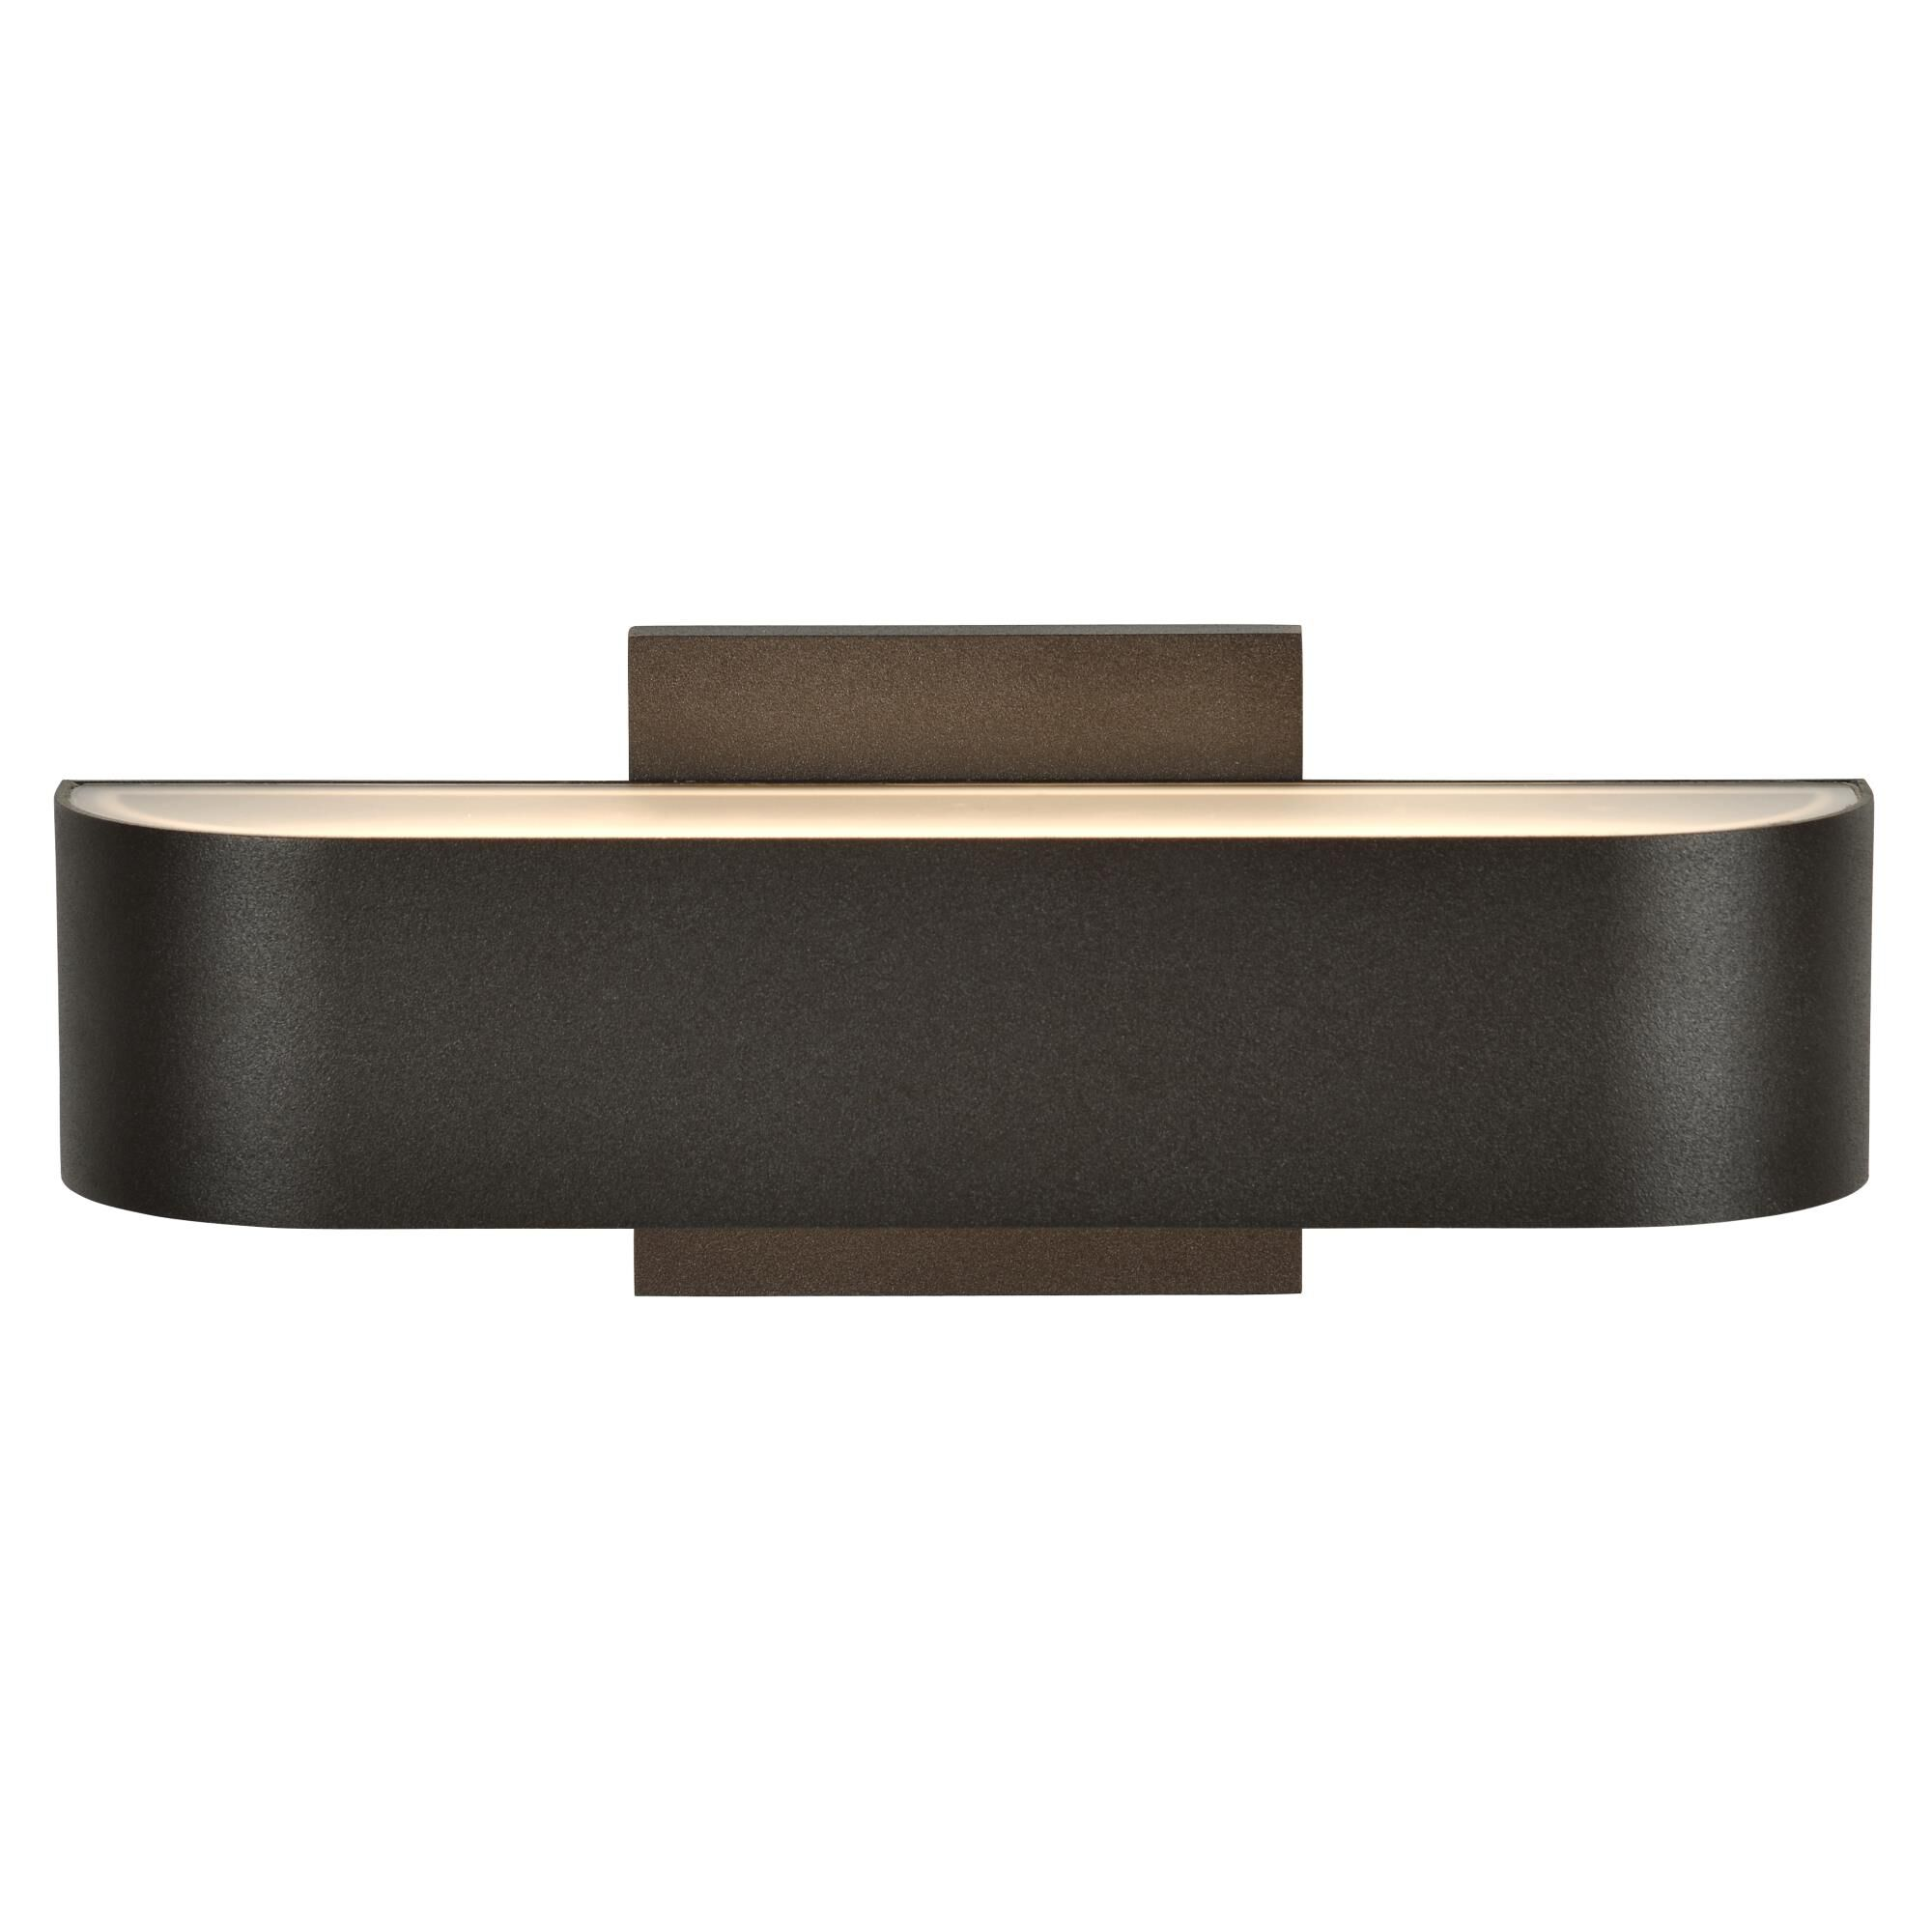 Access Lighting Montreal 2 Inch Tall 2 Light LED Outdoor Wall Light Montreal 20046LEDDMG BRZFST Modern Contemporary